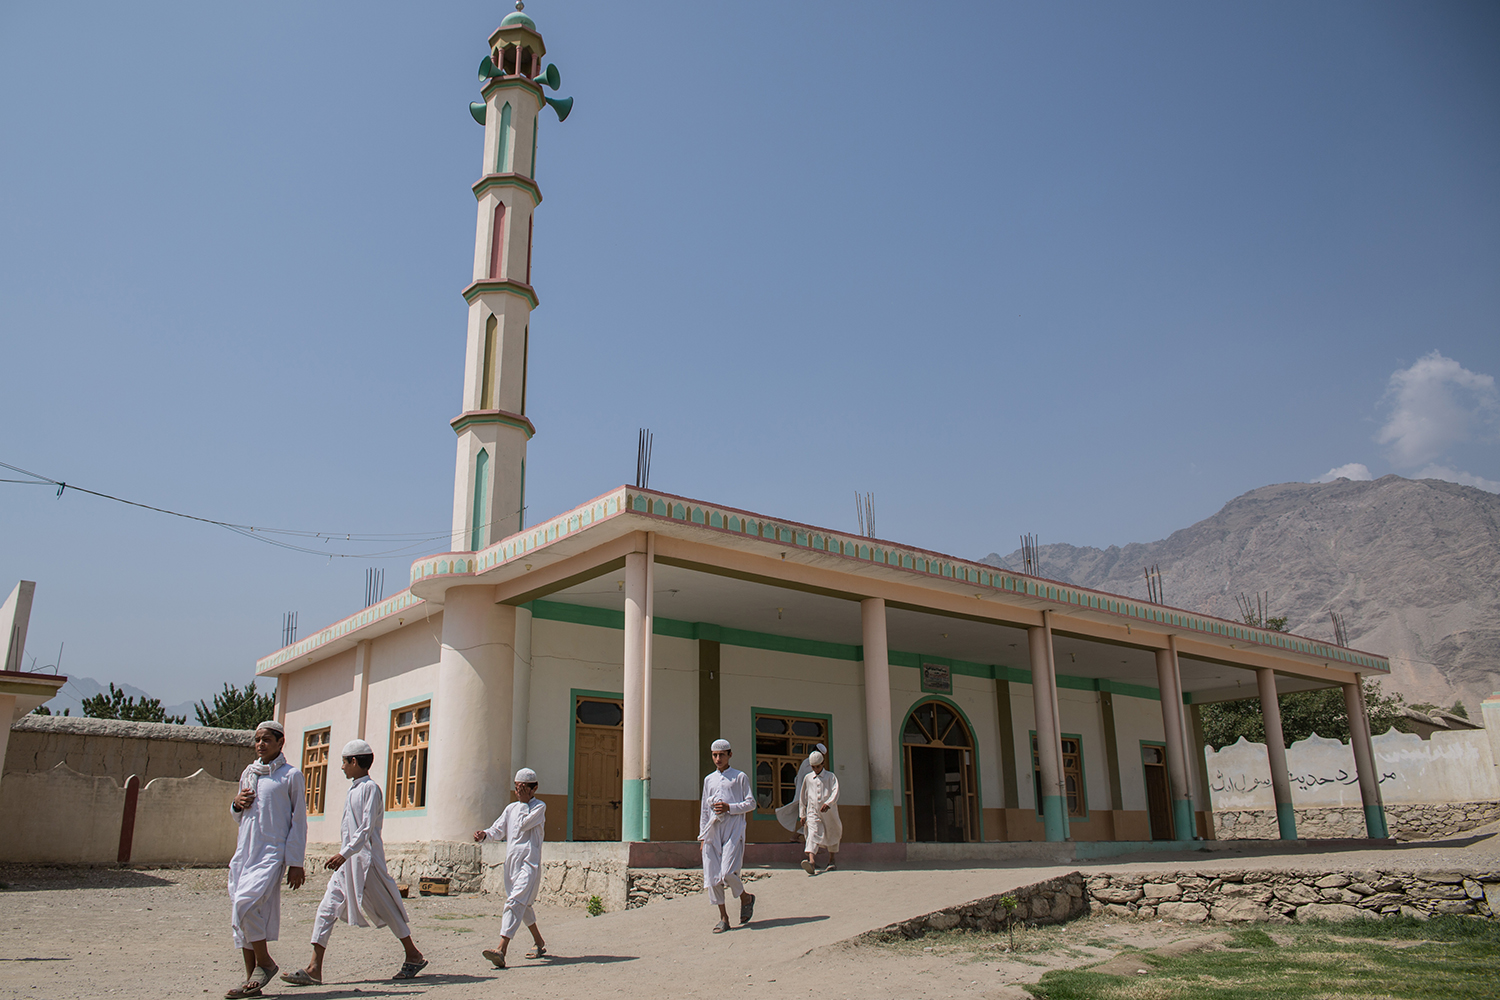 A group of boys stands outside Lamatak's mosque on Sept. 16, 2019.